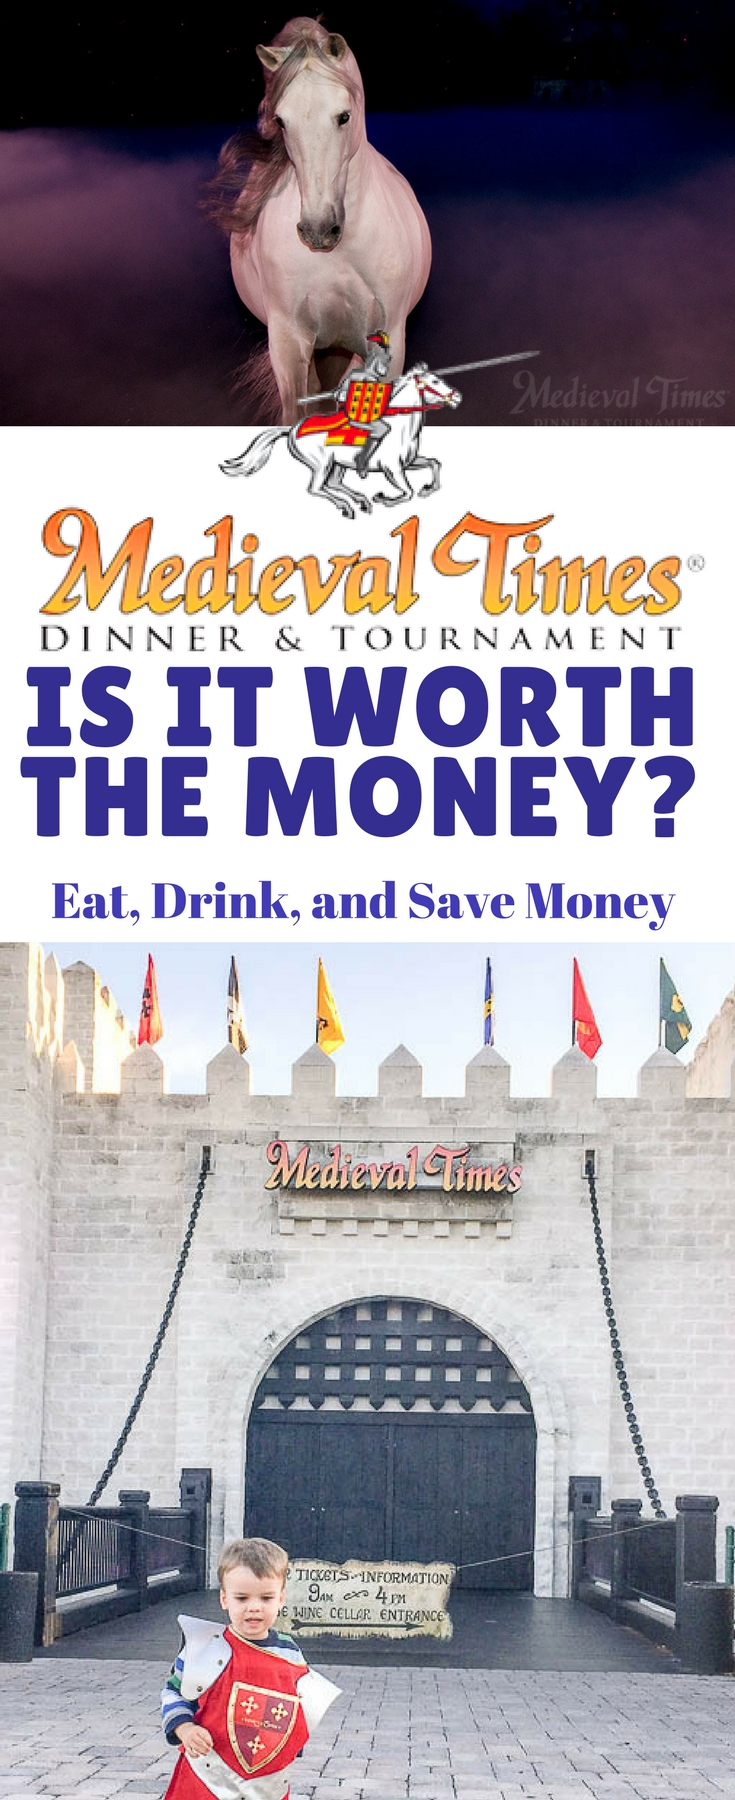 Is Medieval Times dinner and tournament worth the Money? Read these tips and tricks to find out how to get the best deals and if it's worth the money for your next family vacation.